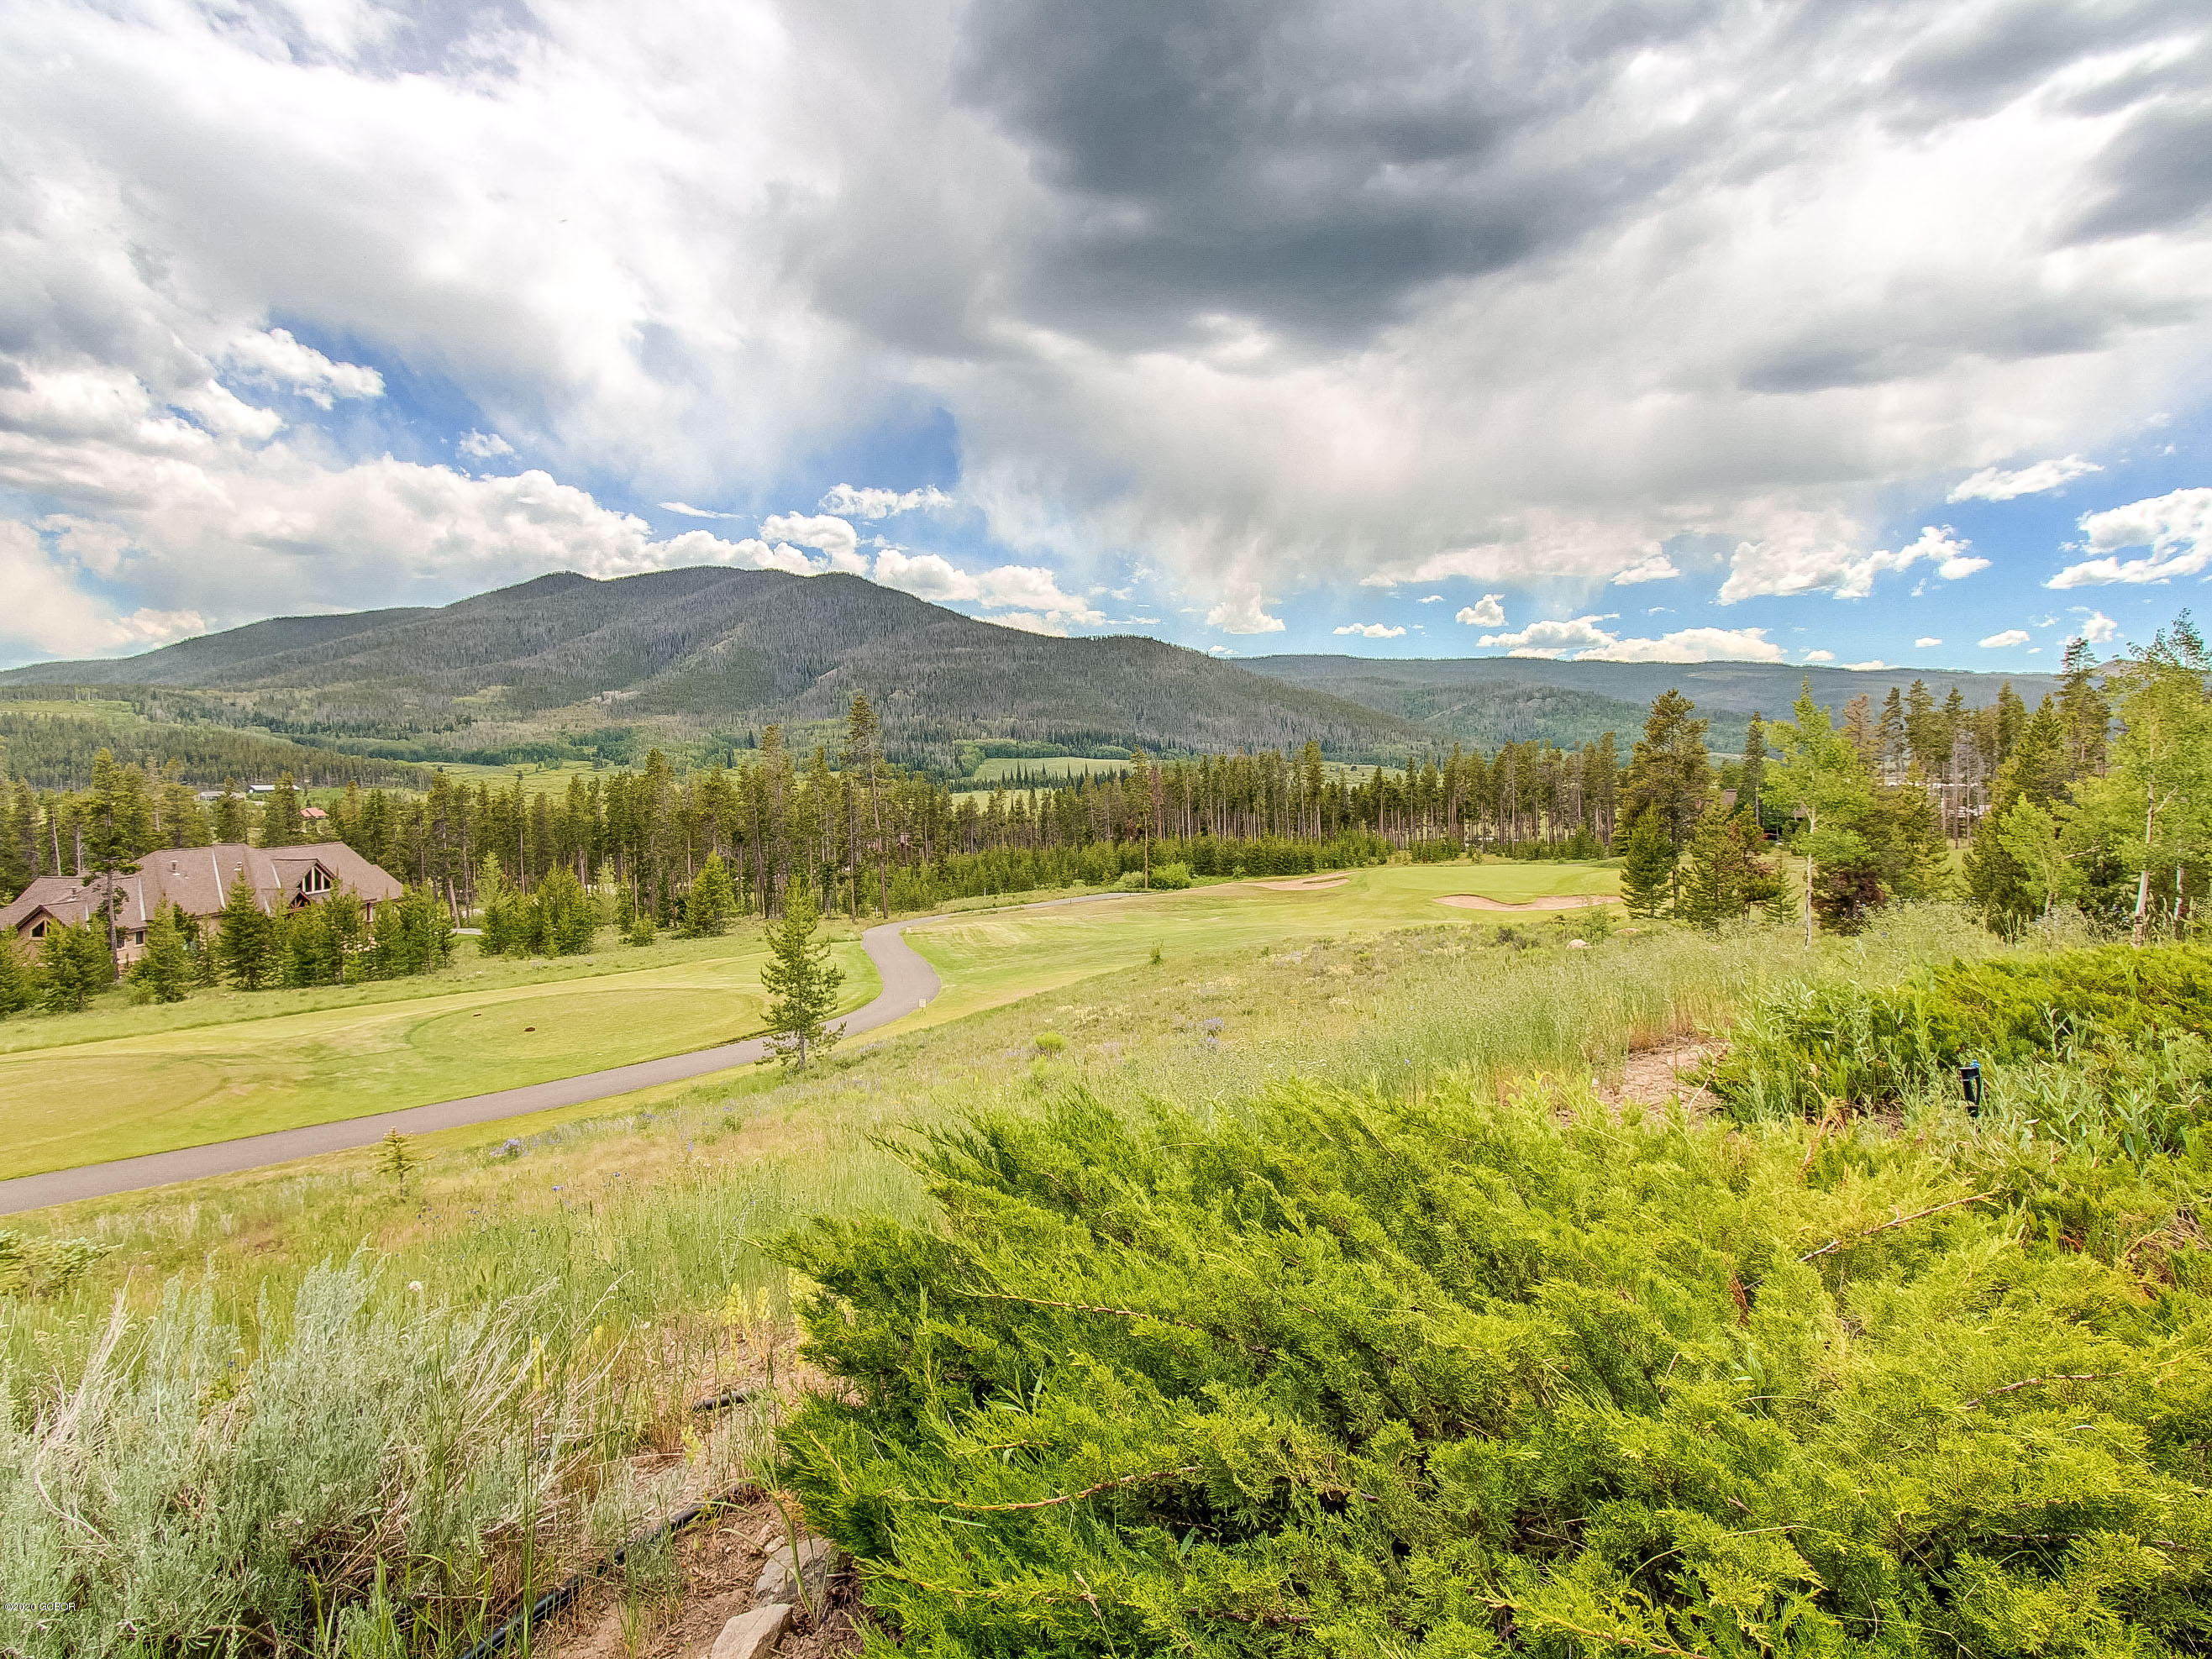 MLS# 20-898 - 81 - 107 Gcr 5114  #, Tabernash, CO 80478